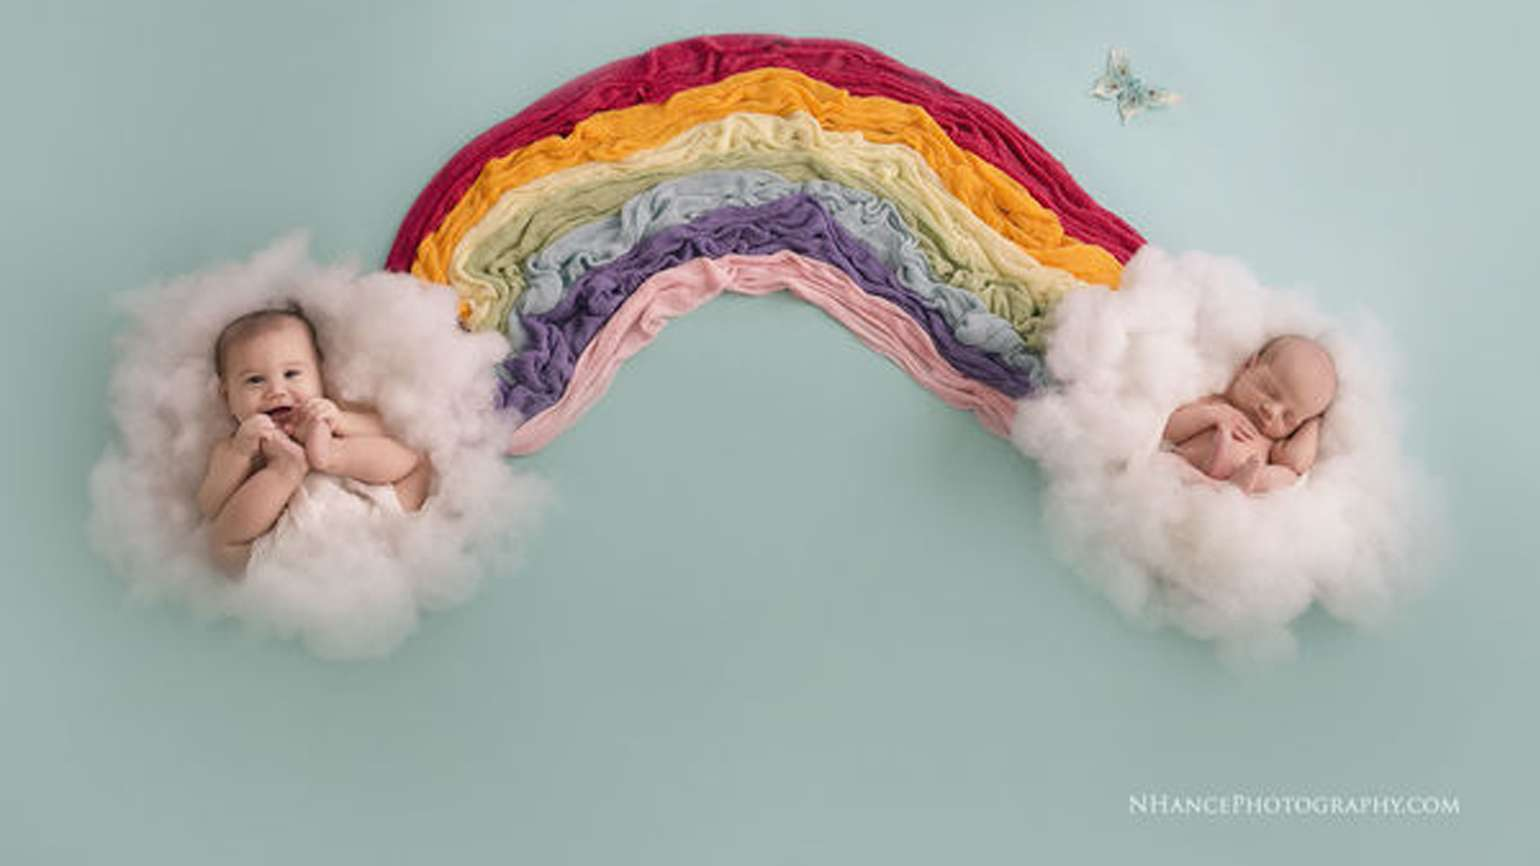 Evans and Whitten lay on clouds in their rainbow babies photo shoot